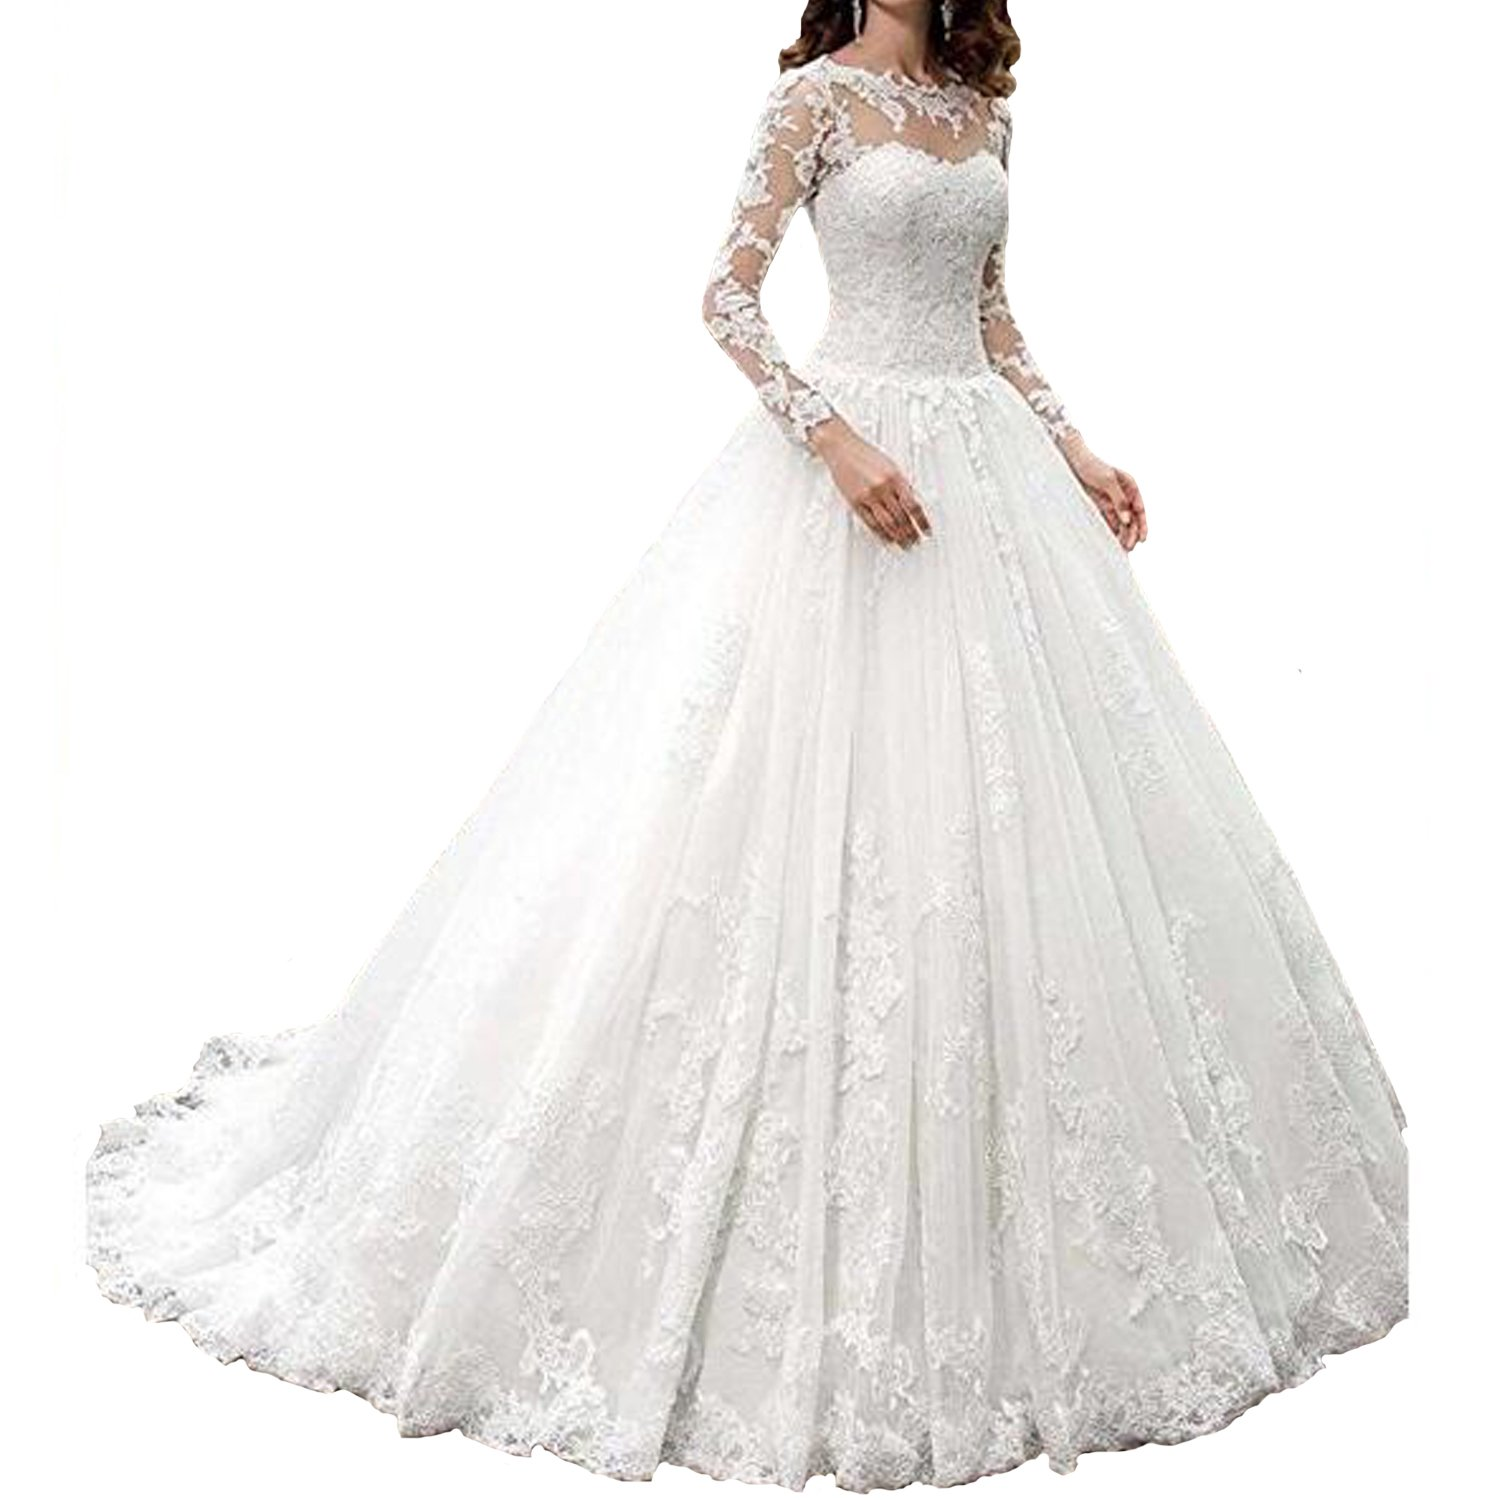 Fair Lady 2017 New Women's Long Sleeves Scoop Lace Ball Gown Wedding Dress Bridal Gowns(Ivory,4)